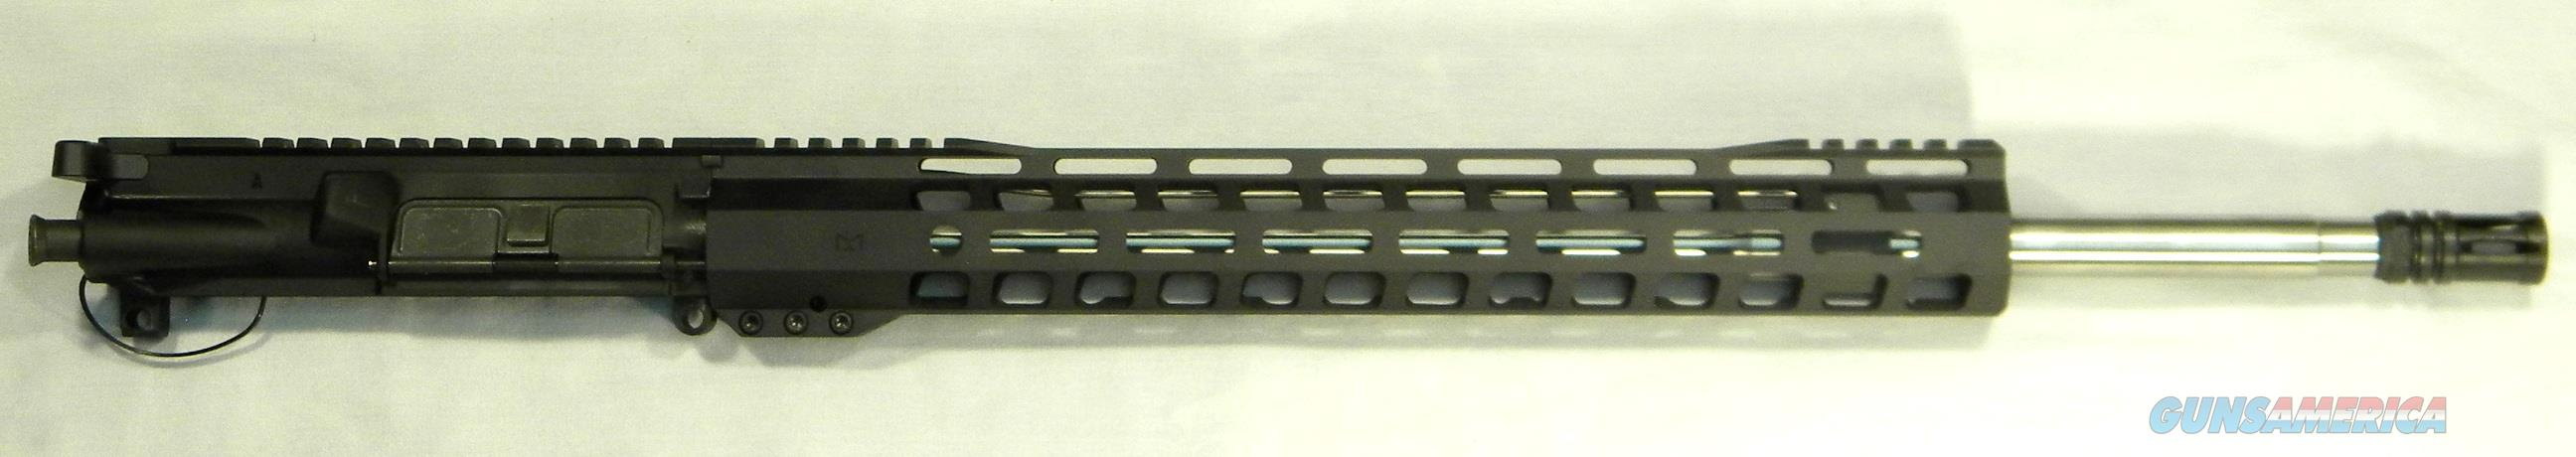 """.224 Valkyrie Complete Upper For AR-15, 20"""" w/ Free-Float Hand Guard  Non-Guns > Gun Parts > M16-AR15"""